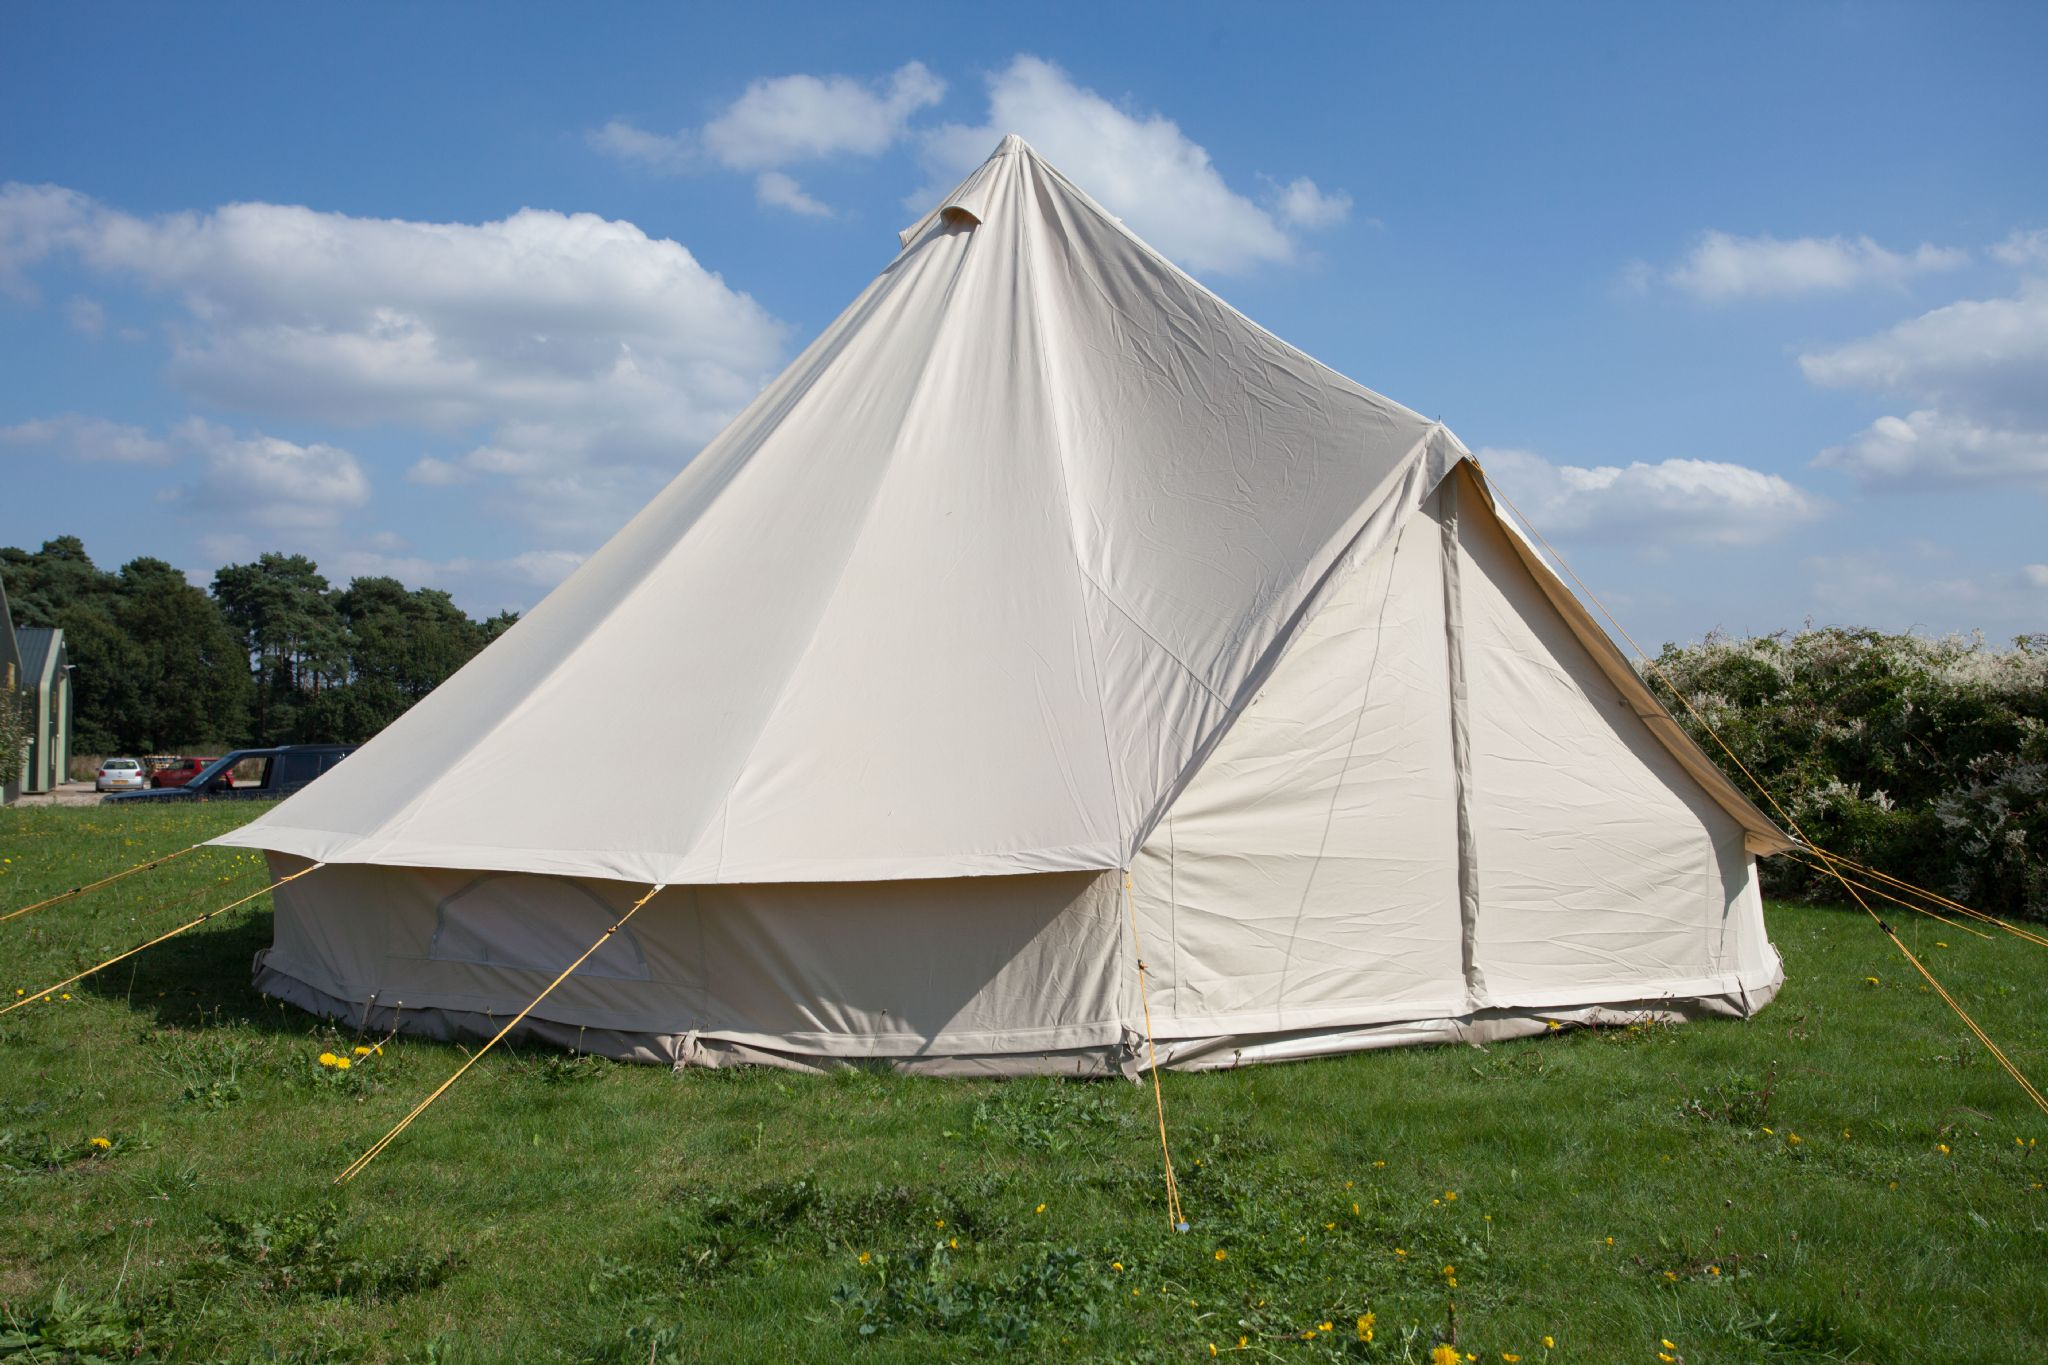 & SoulPad 6000 Hybrid - G - 6m Bell Tent 6 Person